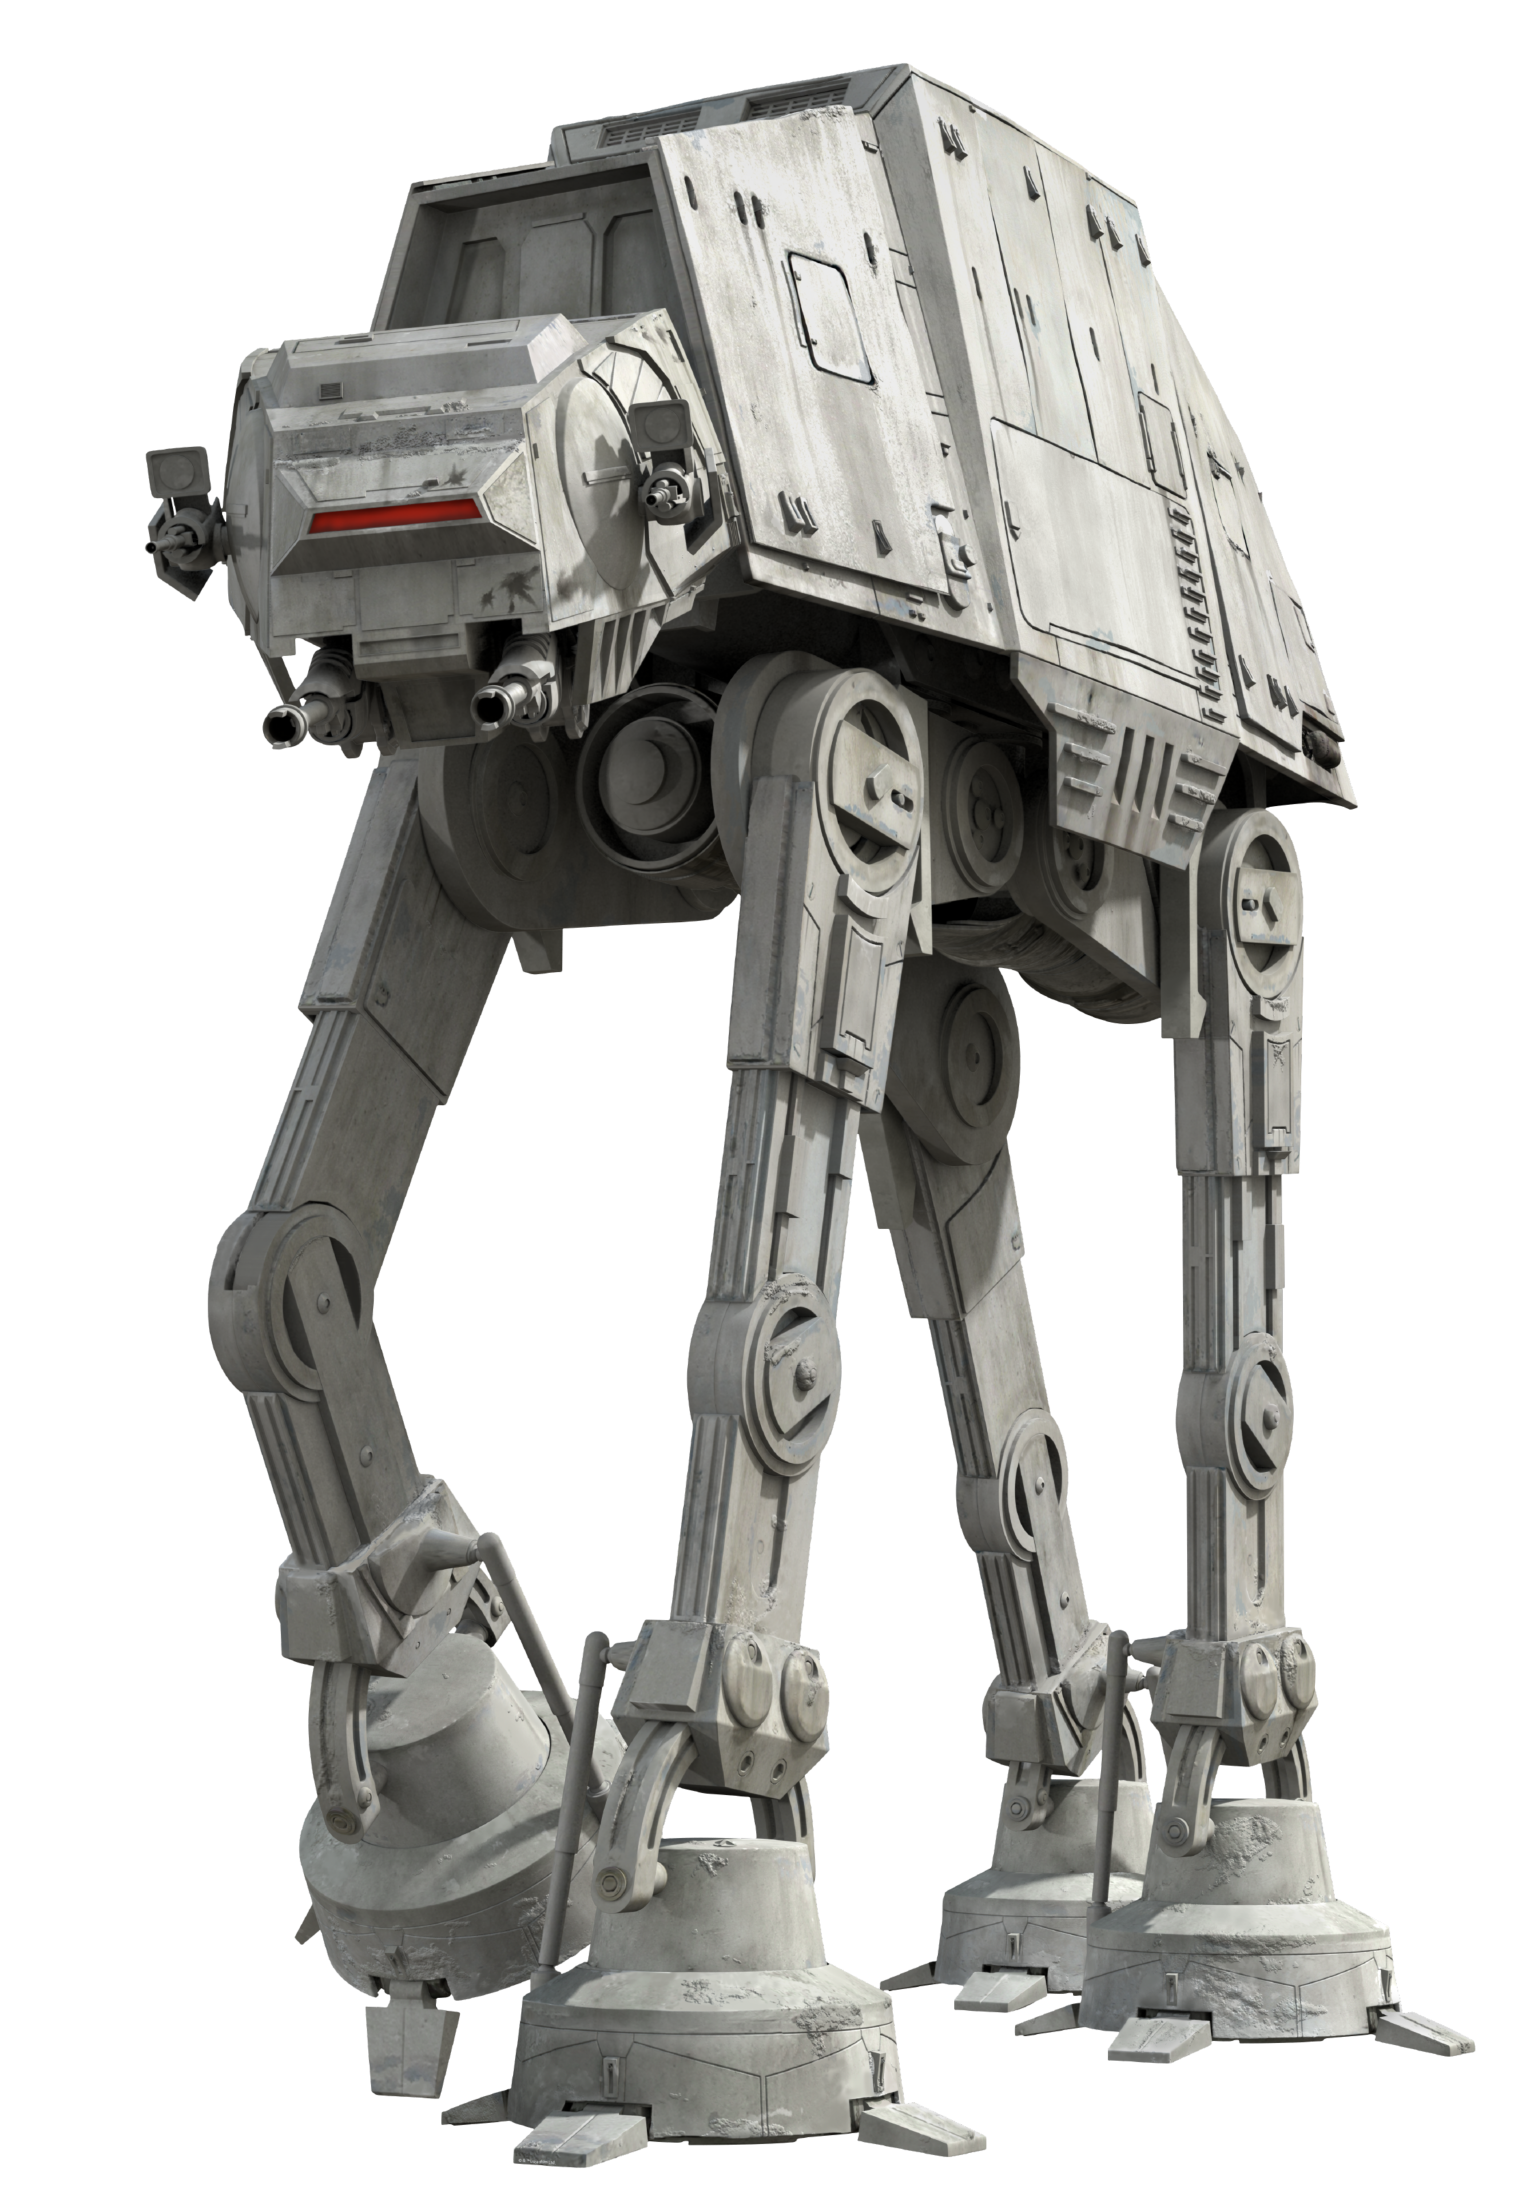 Imperial ground crew star wars empire clipart jpg freeuse library All Terrain Armored Transport | Wookieepedia | FANDOM powered by Wikia jpg freeuse library